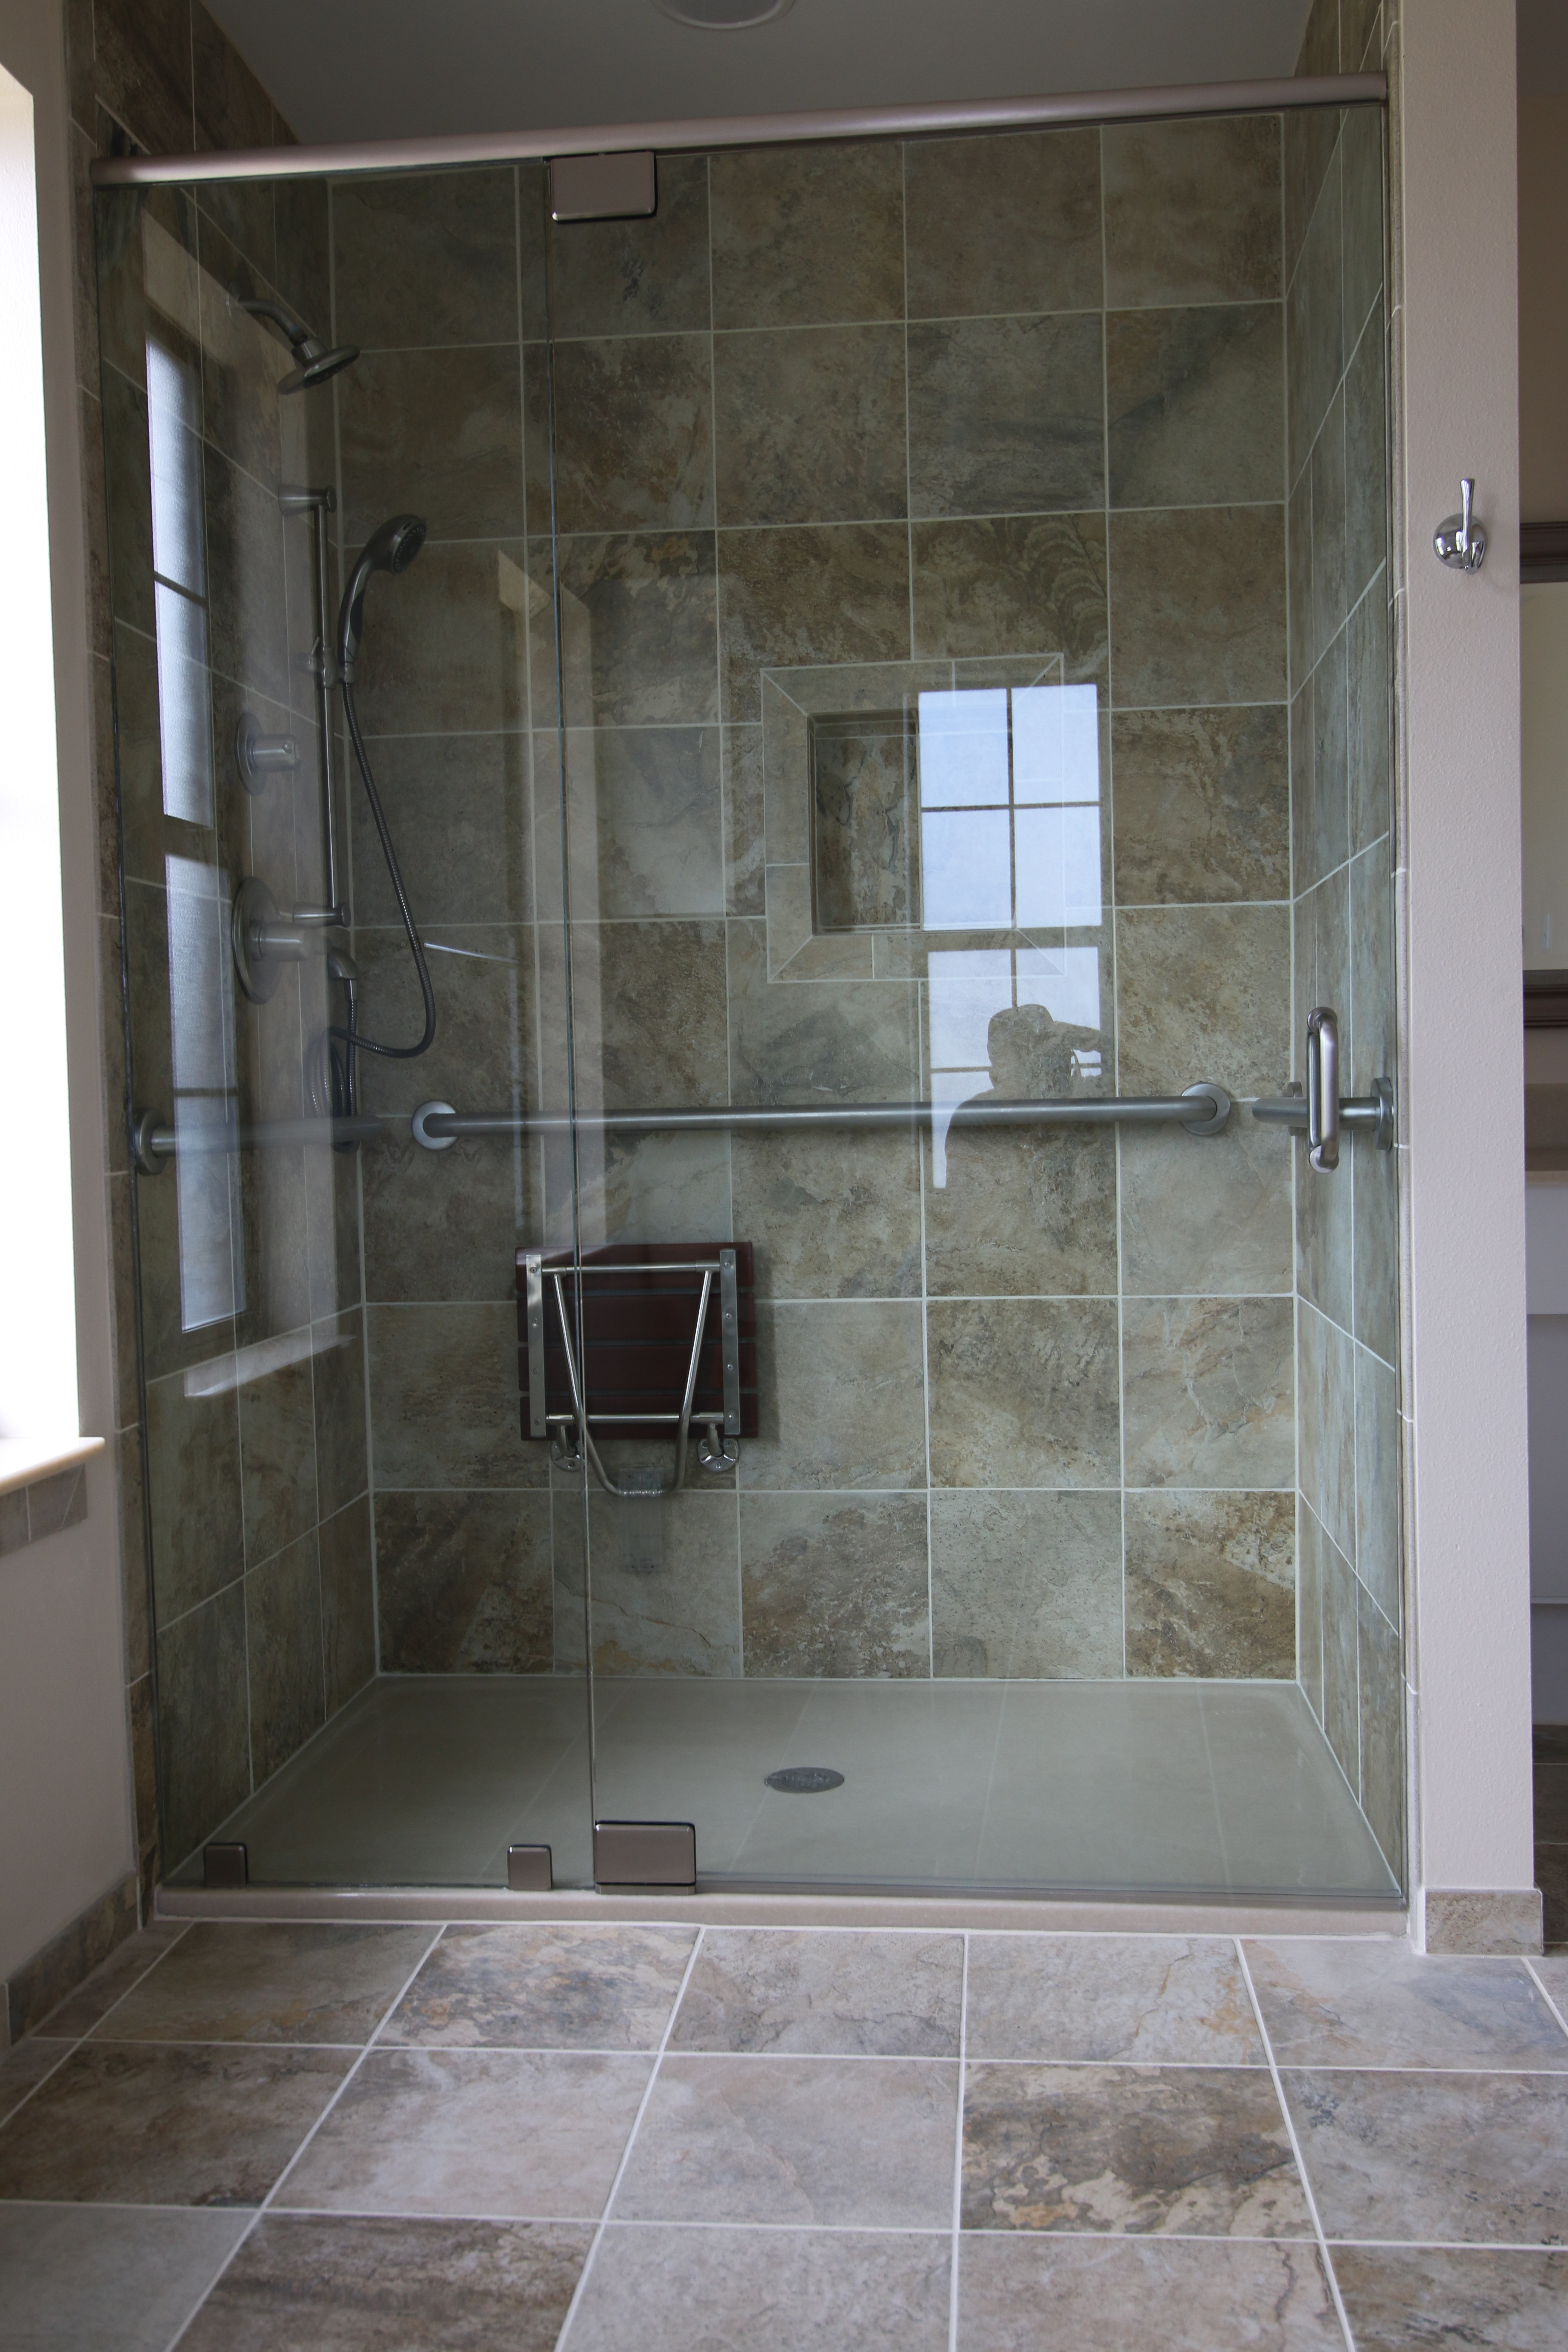 kitchen remodel austin sears cabinets handicap home modifications in austin, texas